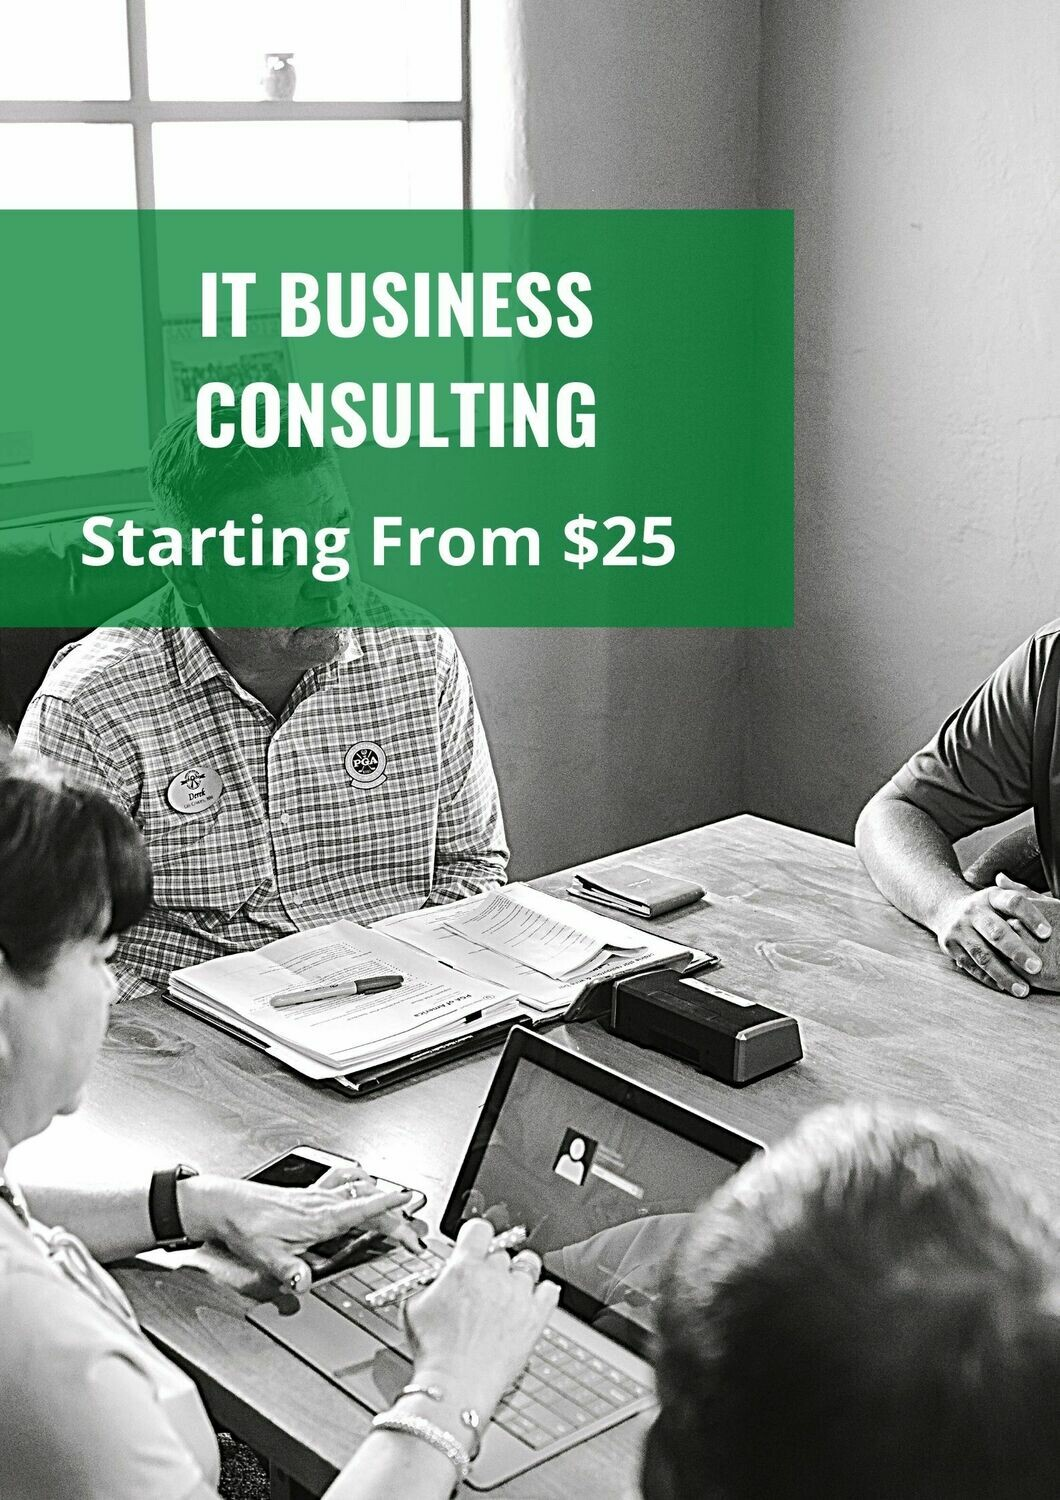 IT Business Consulting Services